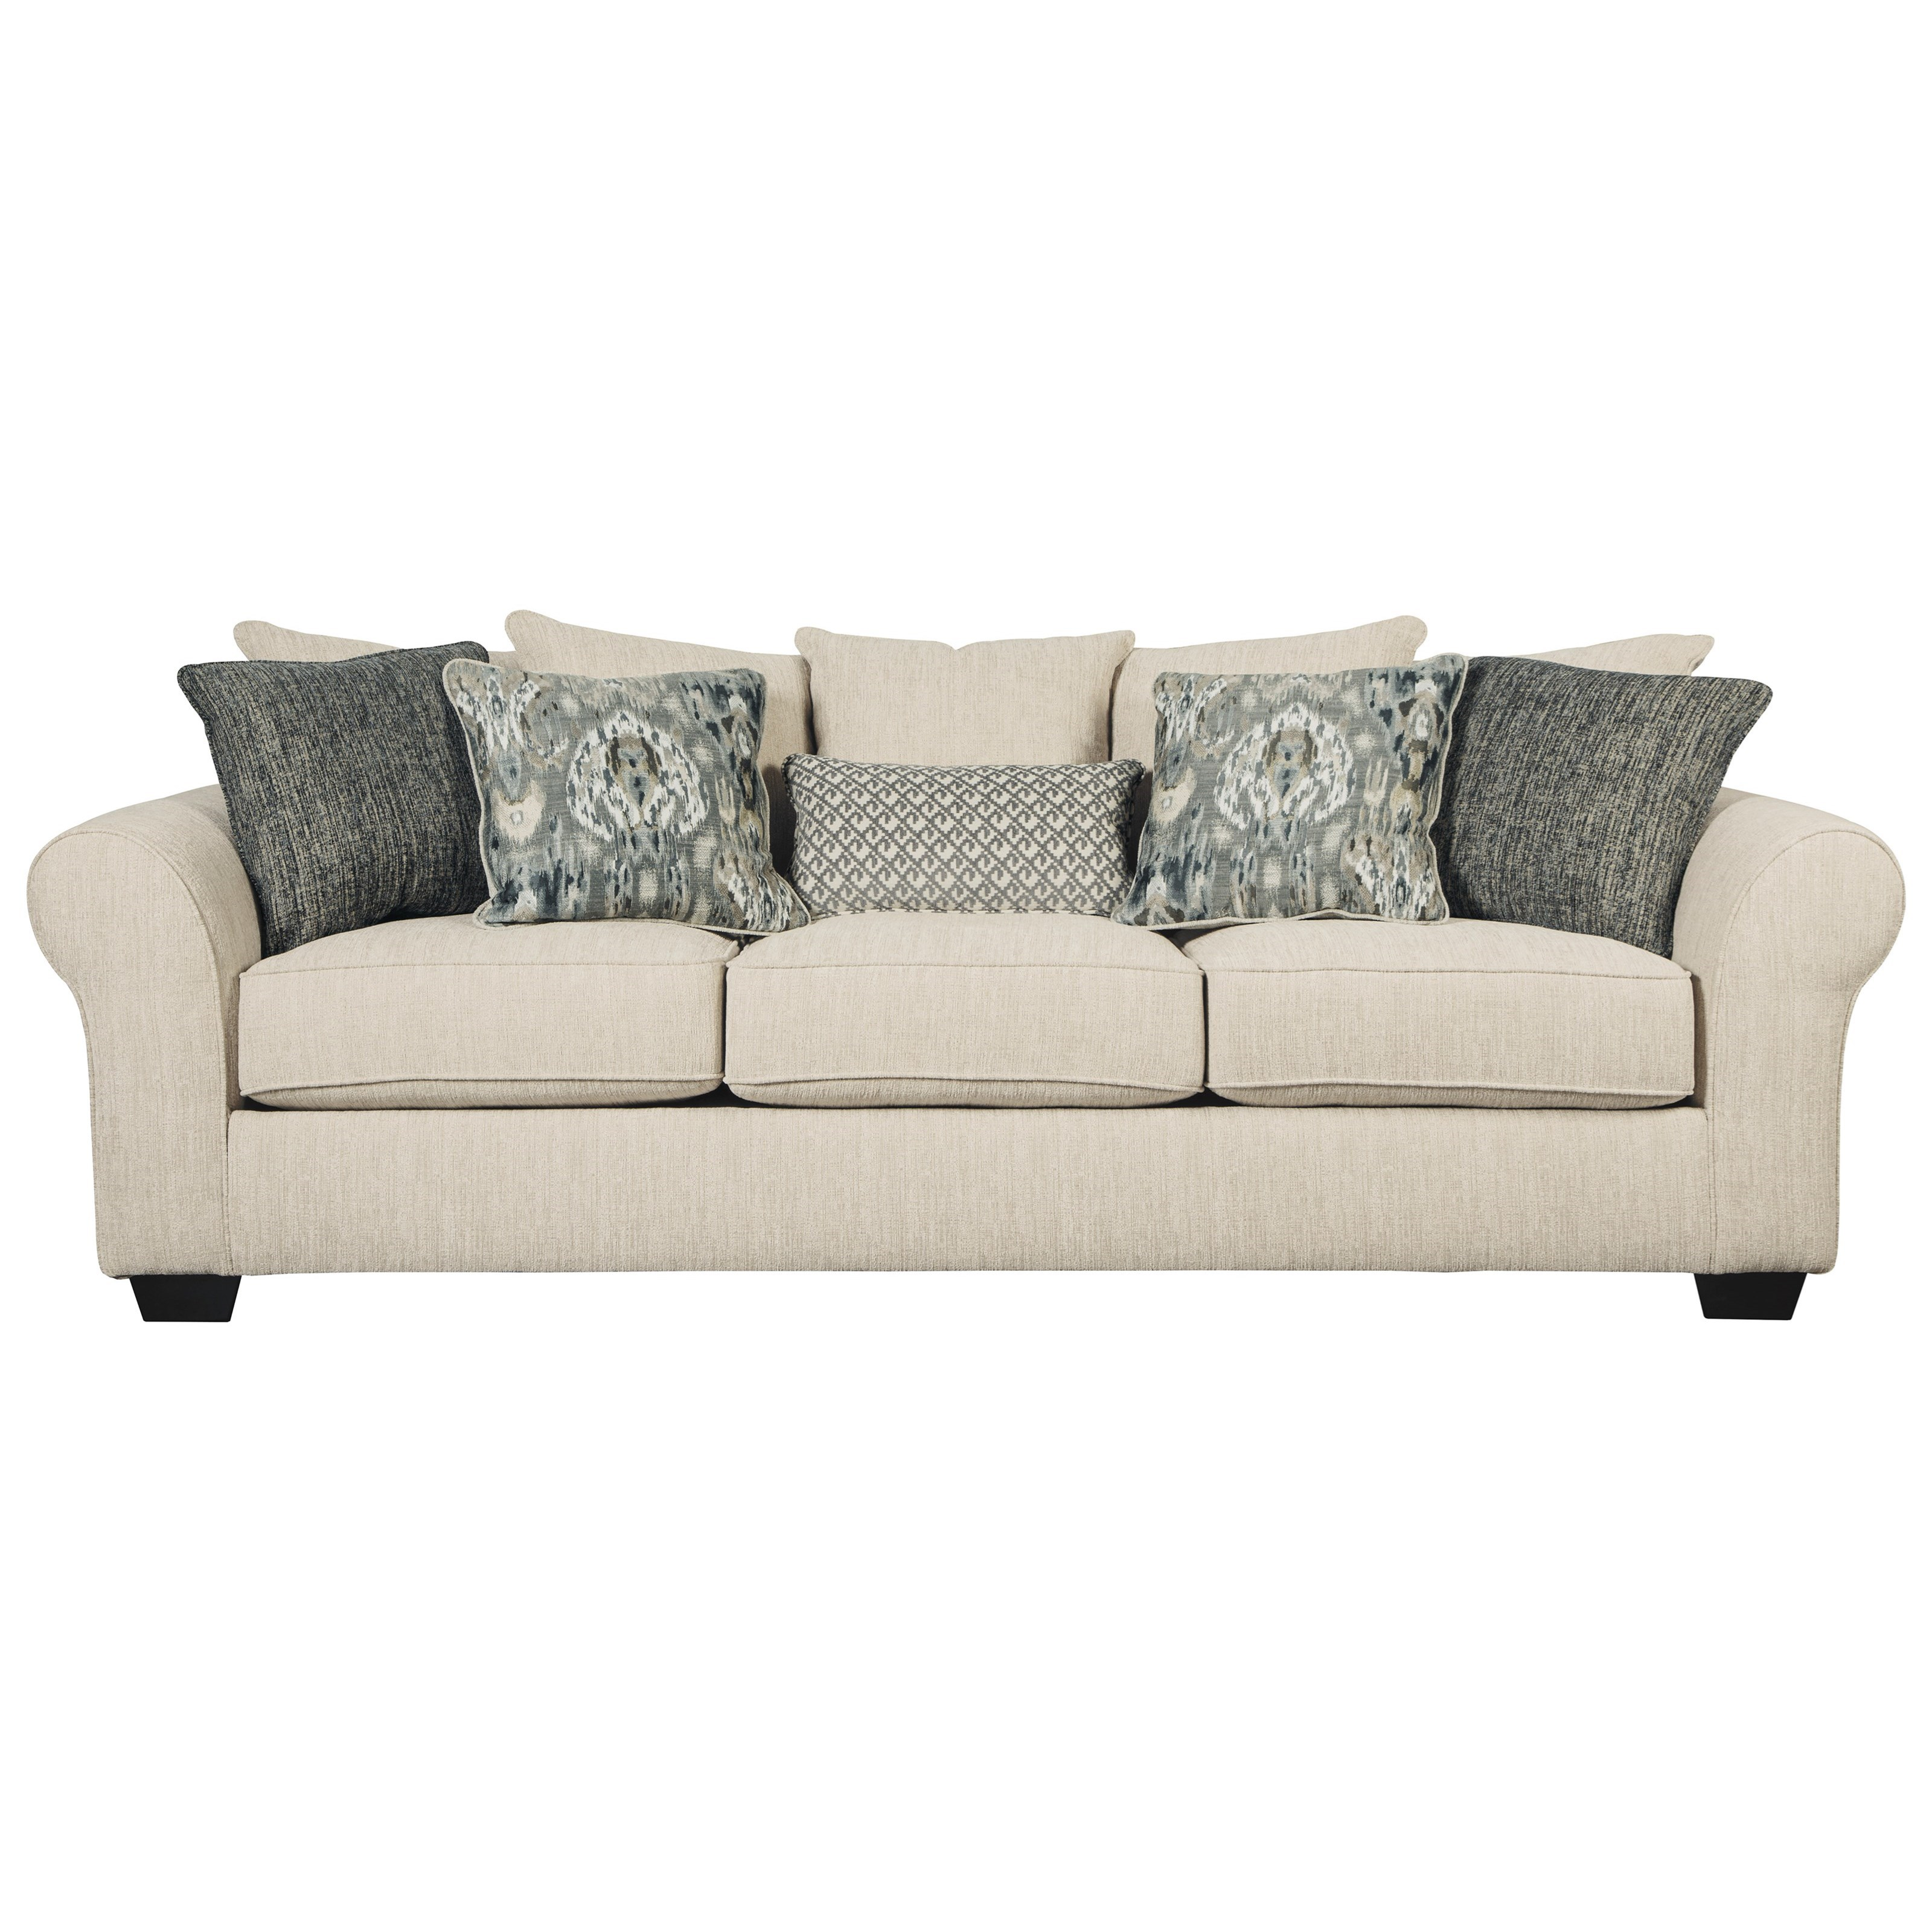 Benchcraft Silsbee Sofa - Item Number: 5540238